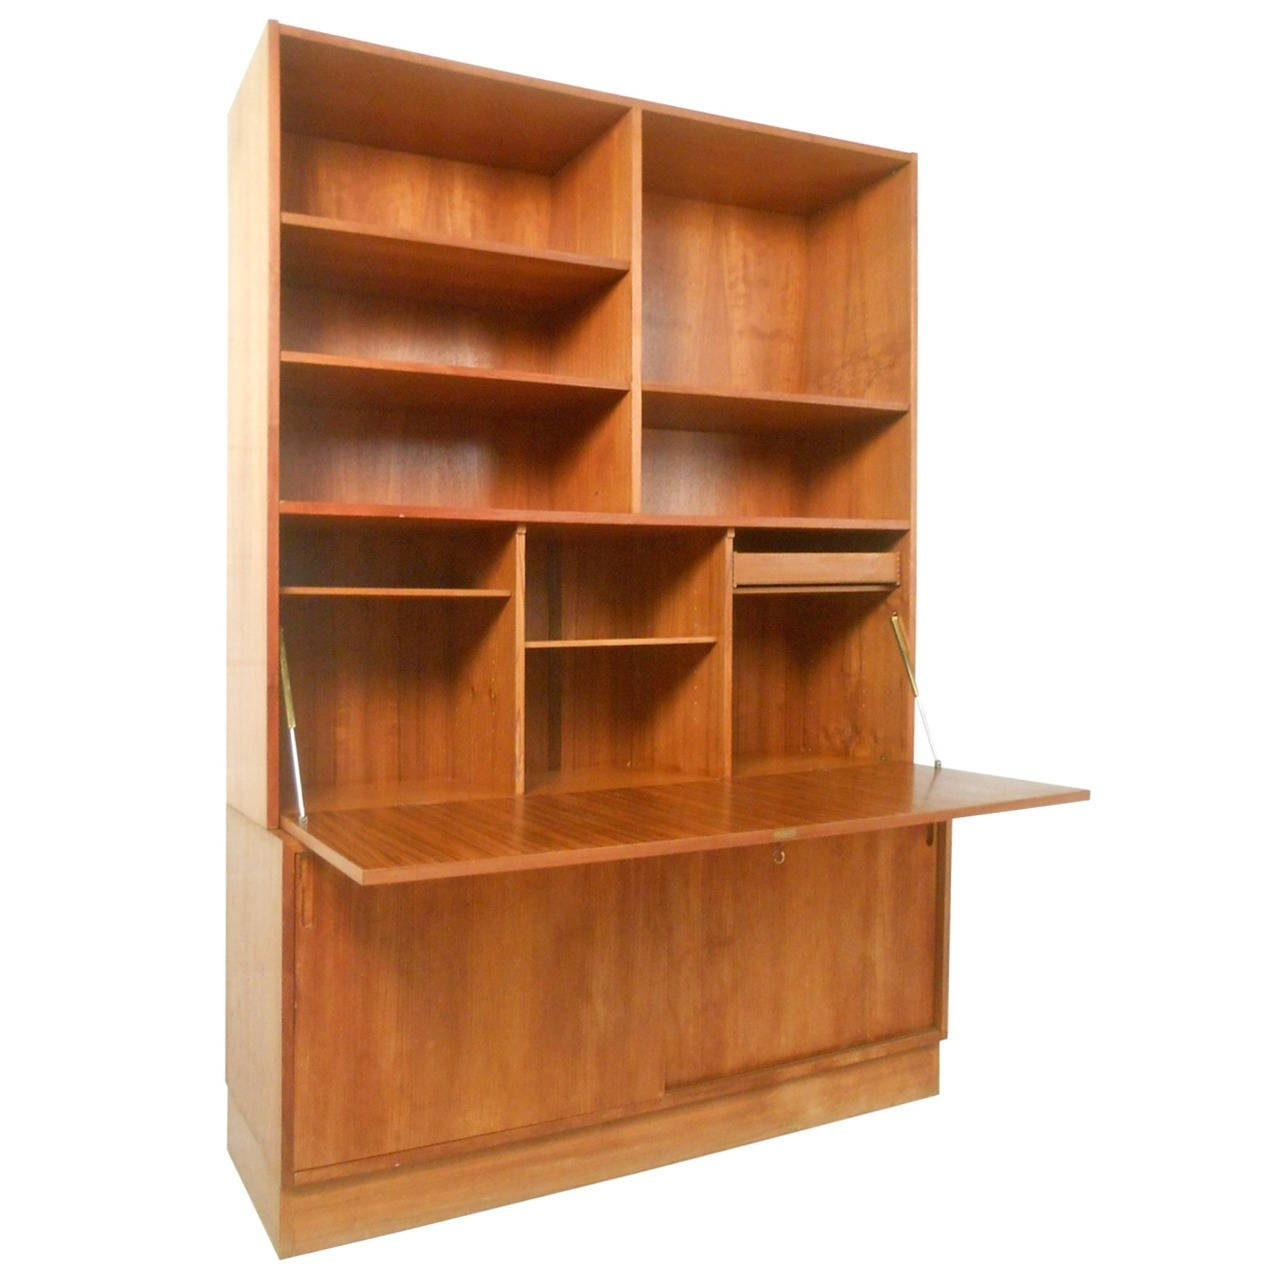 2017 Secretary Bookcases Regarding Gorgeous Mid Century Modern Danish Teak Drop Front Secretary (View 2 of 15)